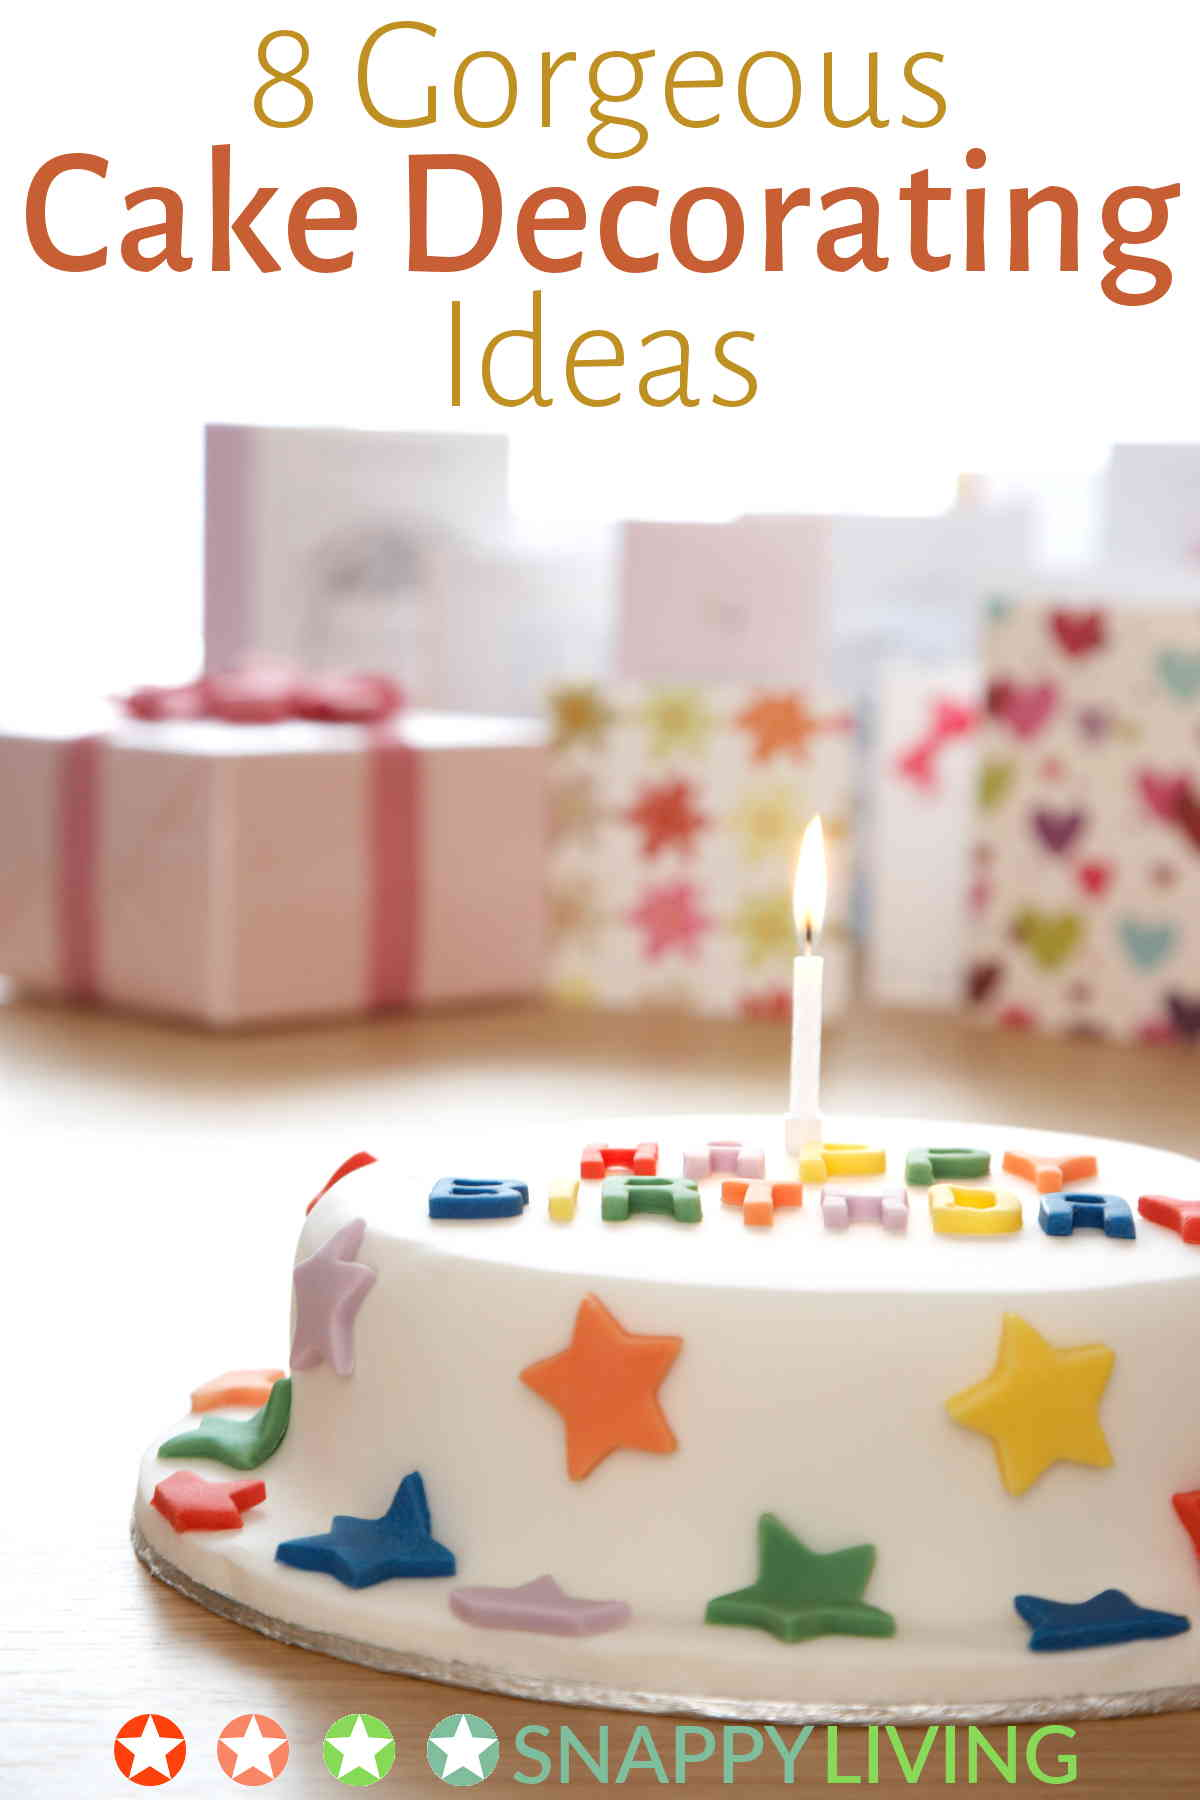 Cake decorated with stars